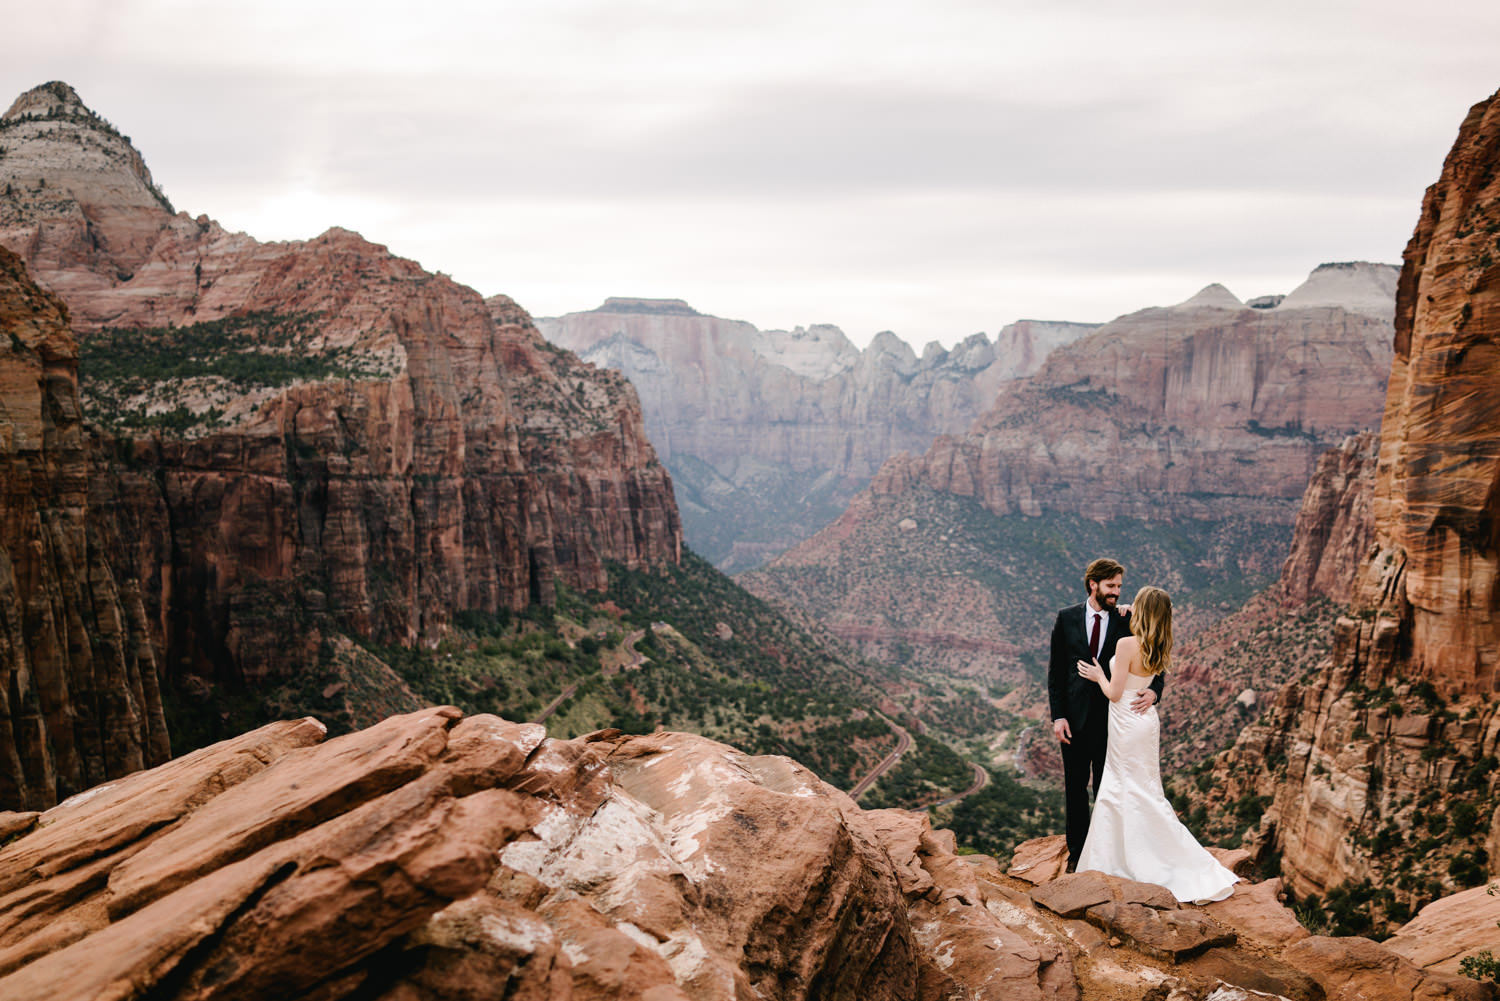 zionnationalpark_utah_destinationweddingphotographer_austendiamondphotography-6